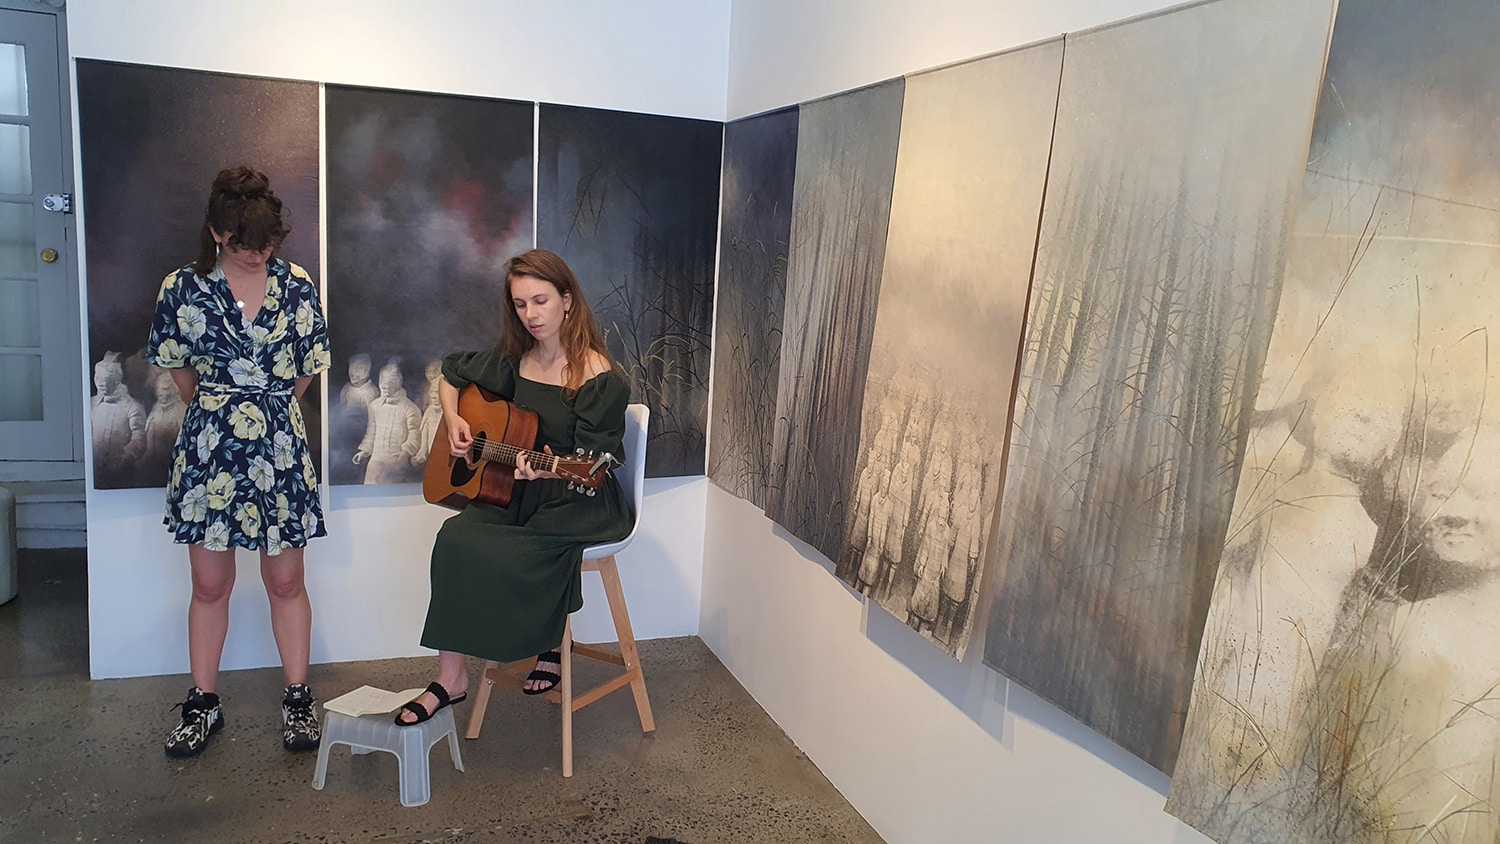 Eden and the Willow Newtown Galleries Lindsay Roser Charmian Kingtston Performance (12) Sydney Art Out Live